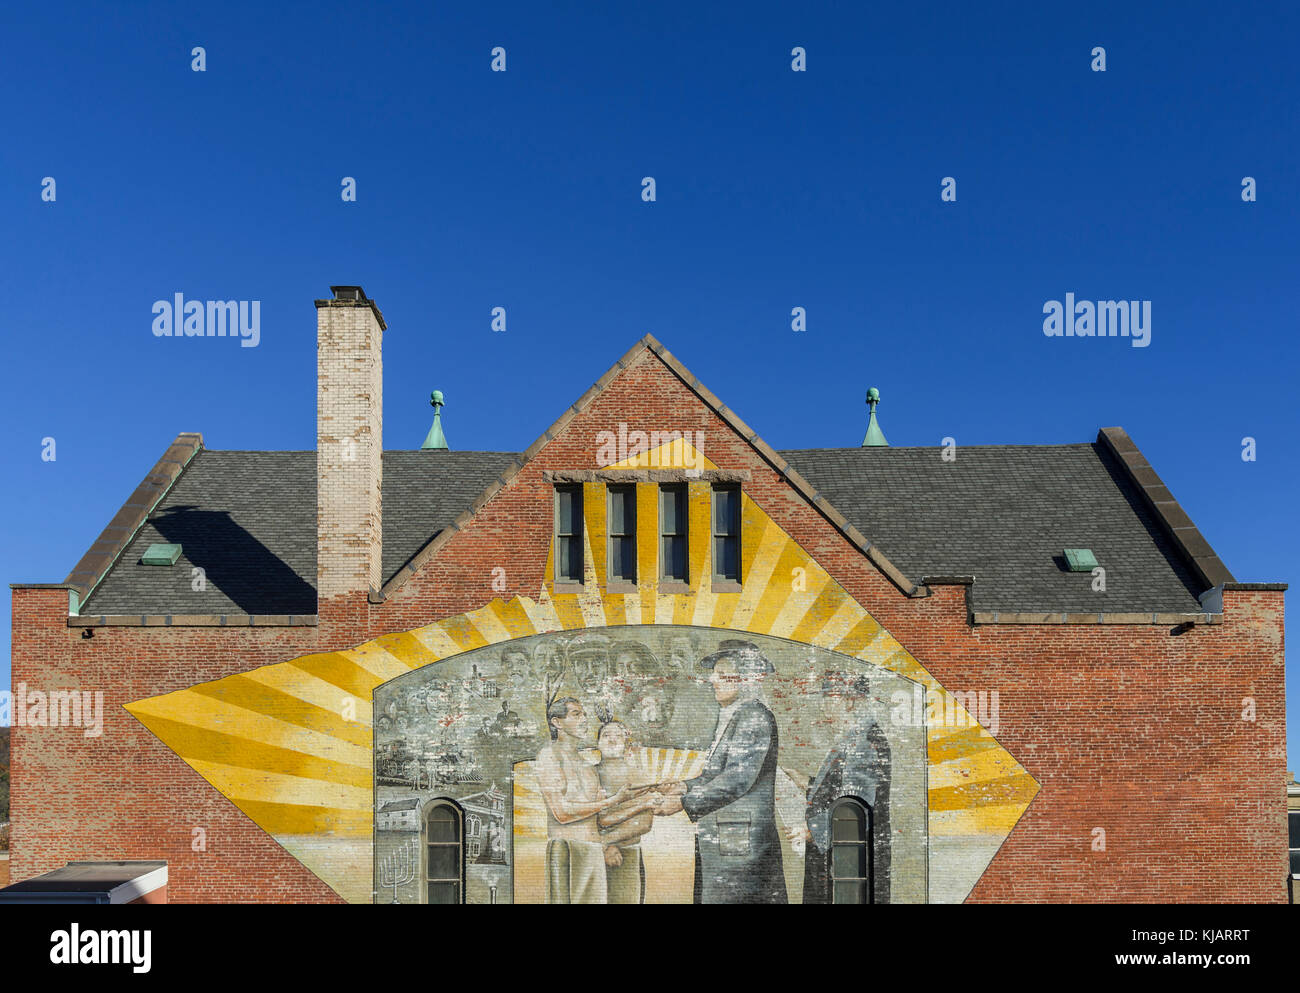 Outdoor Mural Depicting Willam Penn & Native Americans, reading PA USA - Stock Image